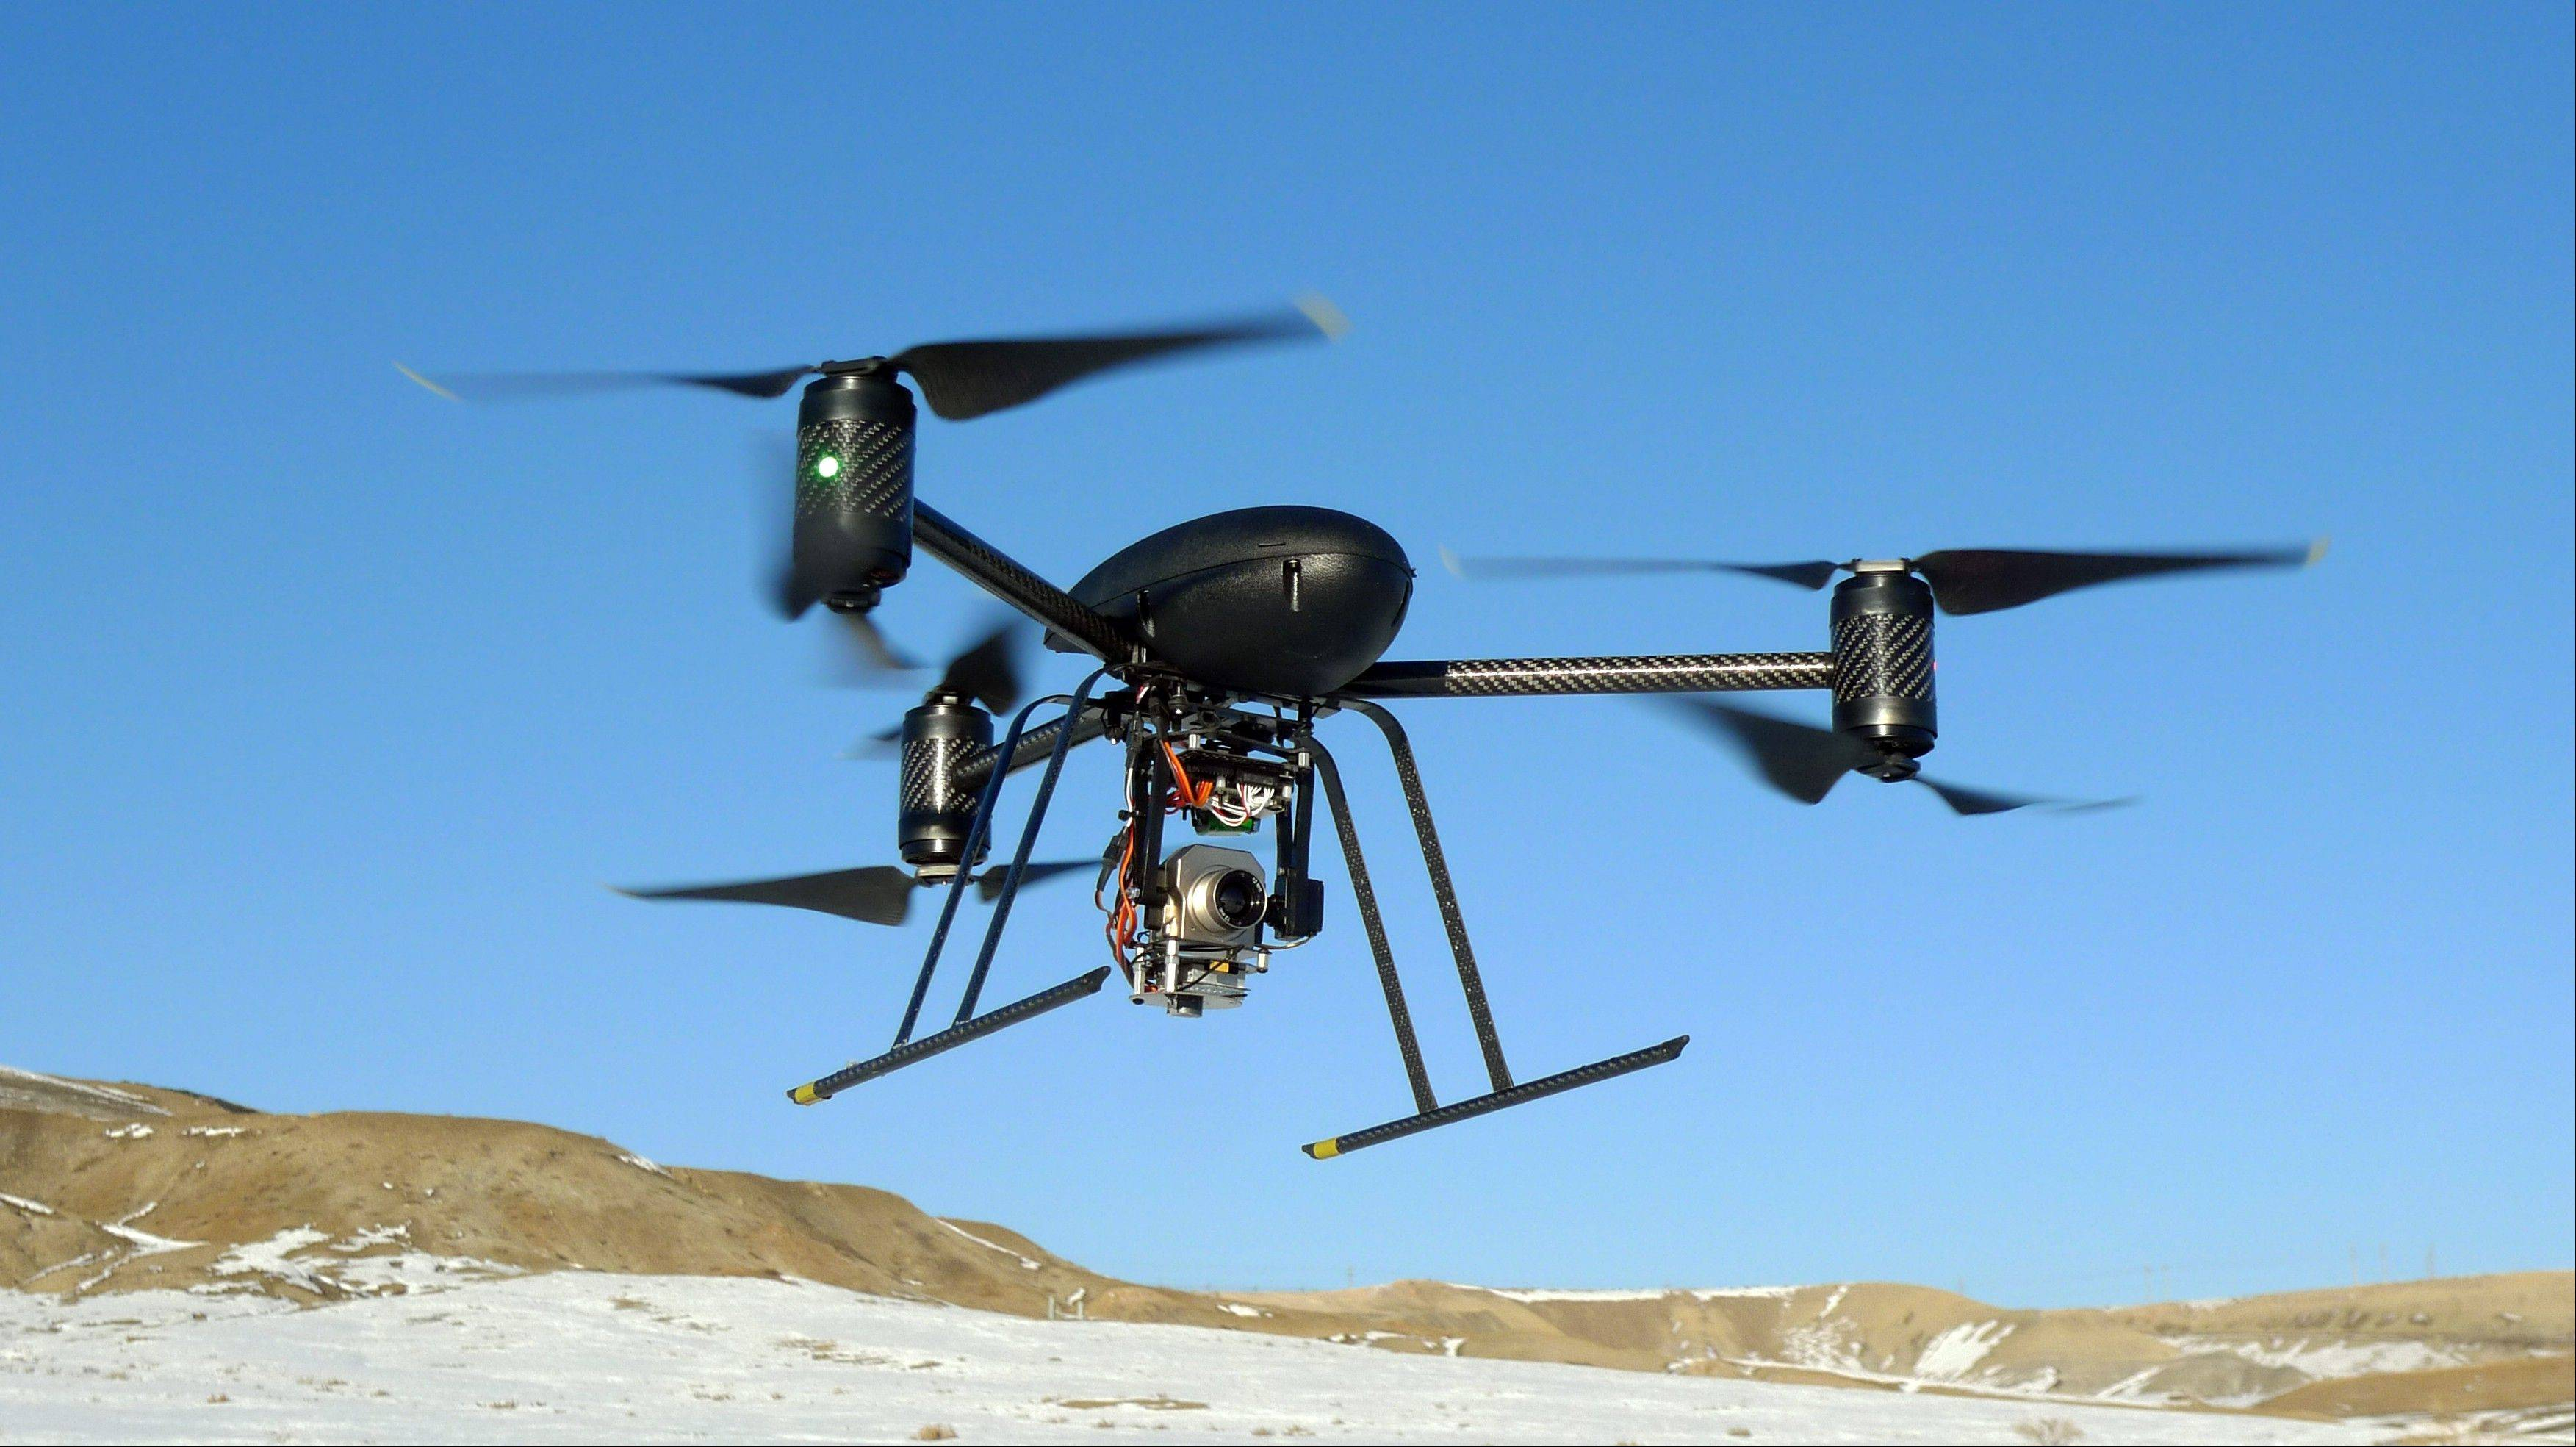 Associated Press/Jan. 8, 2009A small Draganflyer X6 drone is photographed during a test flight in Mesa County, Colo.